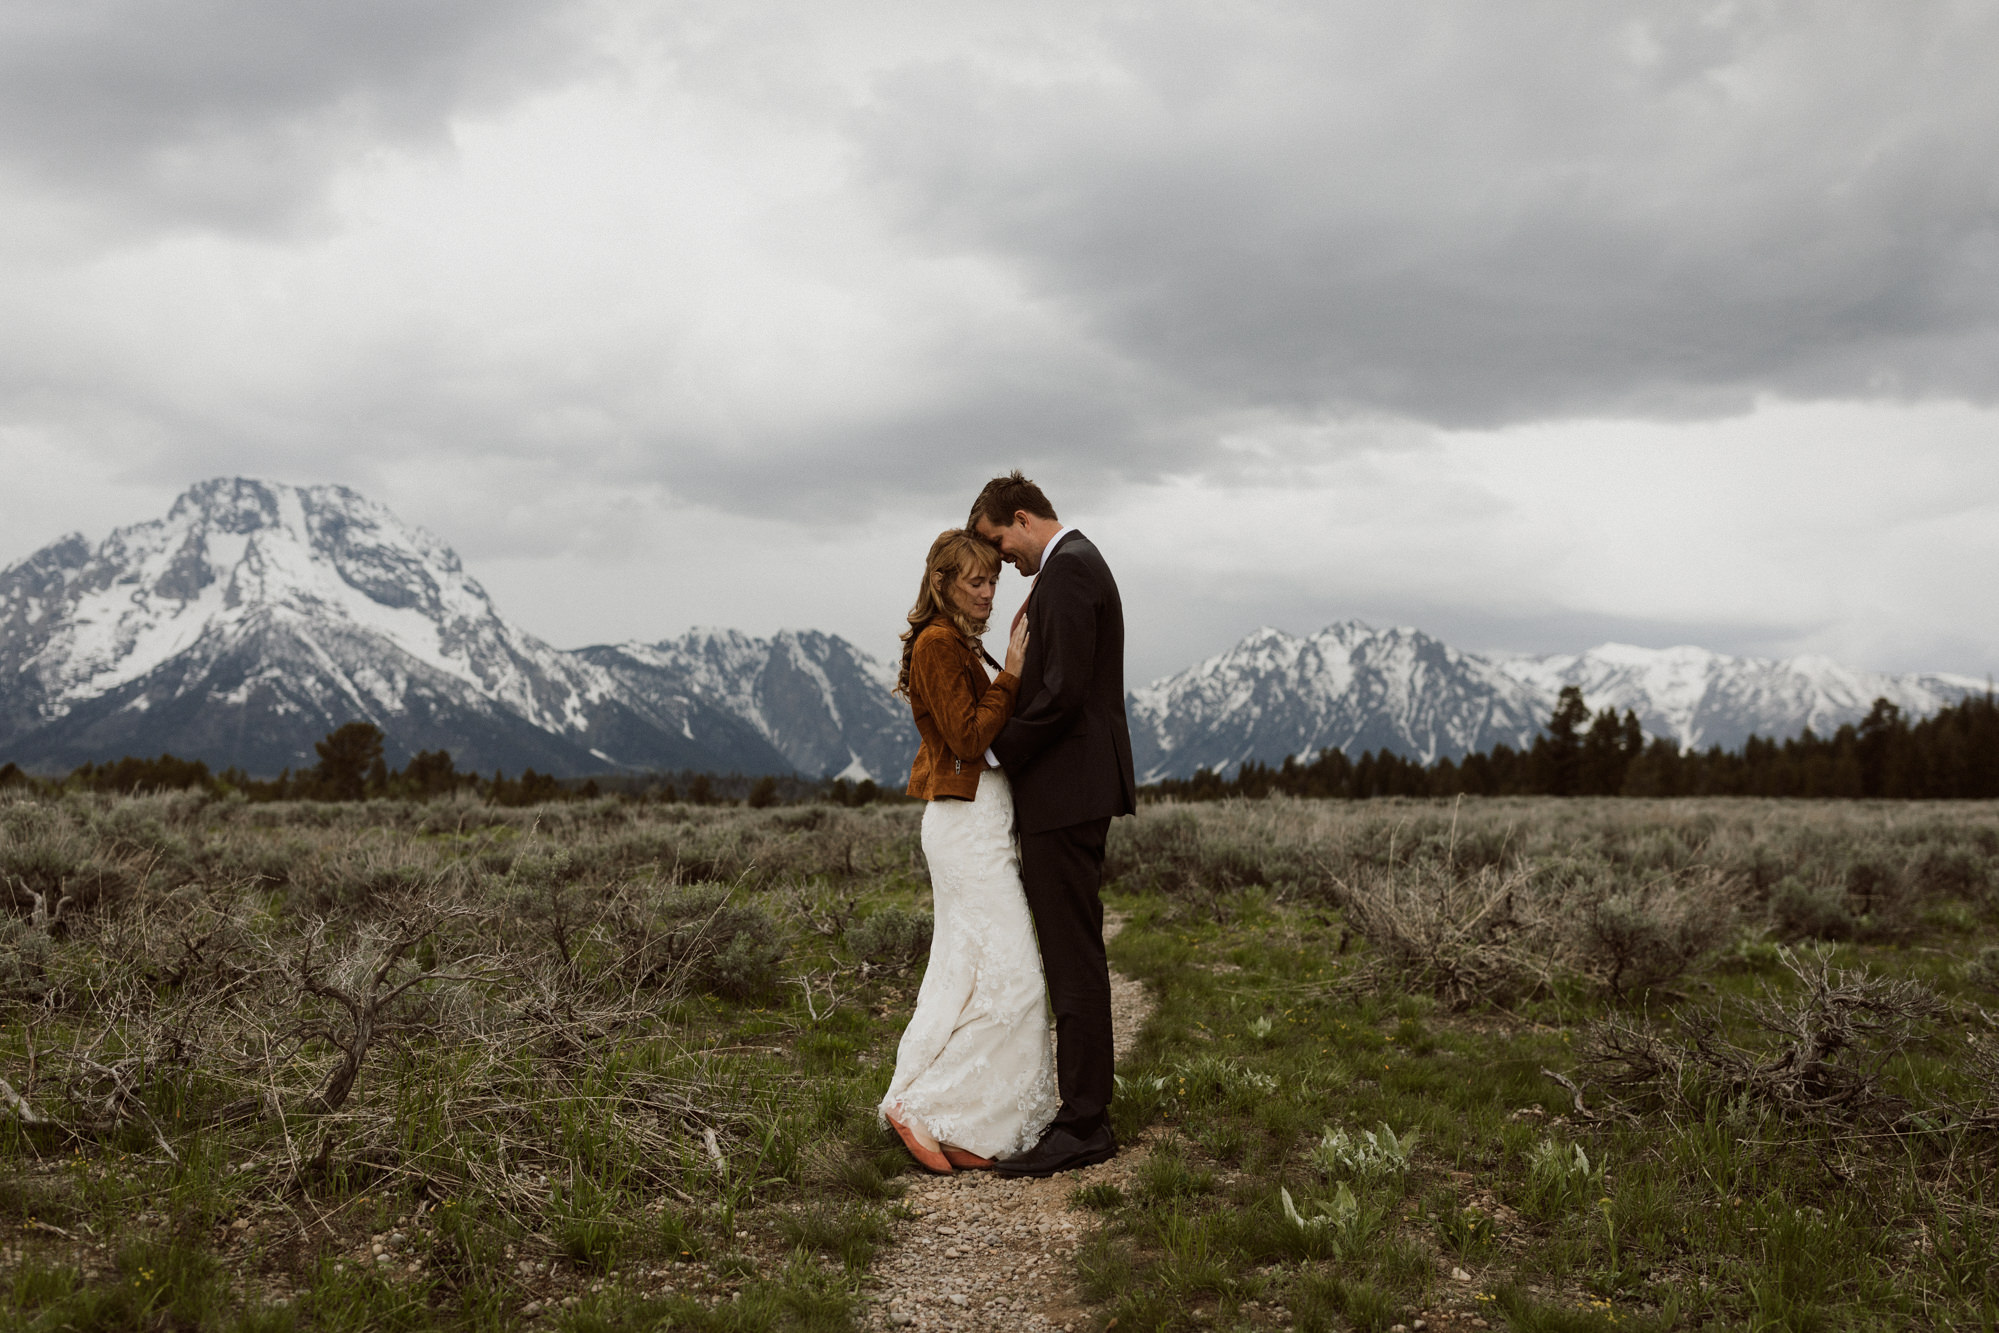 grand-teton-national-park-wedding-26.jpg